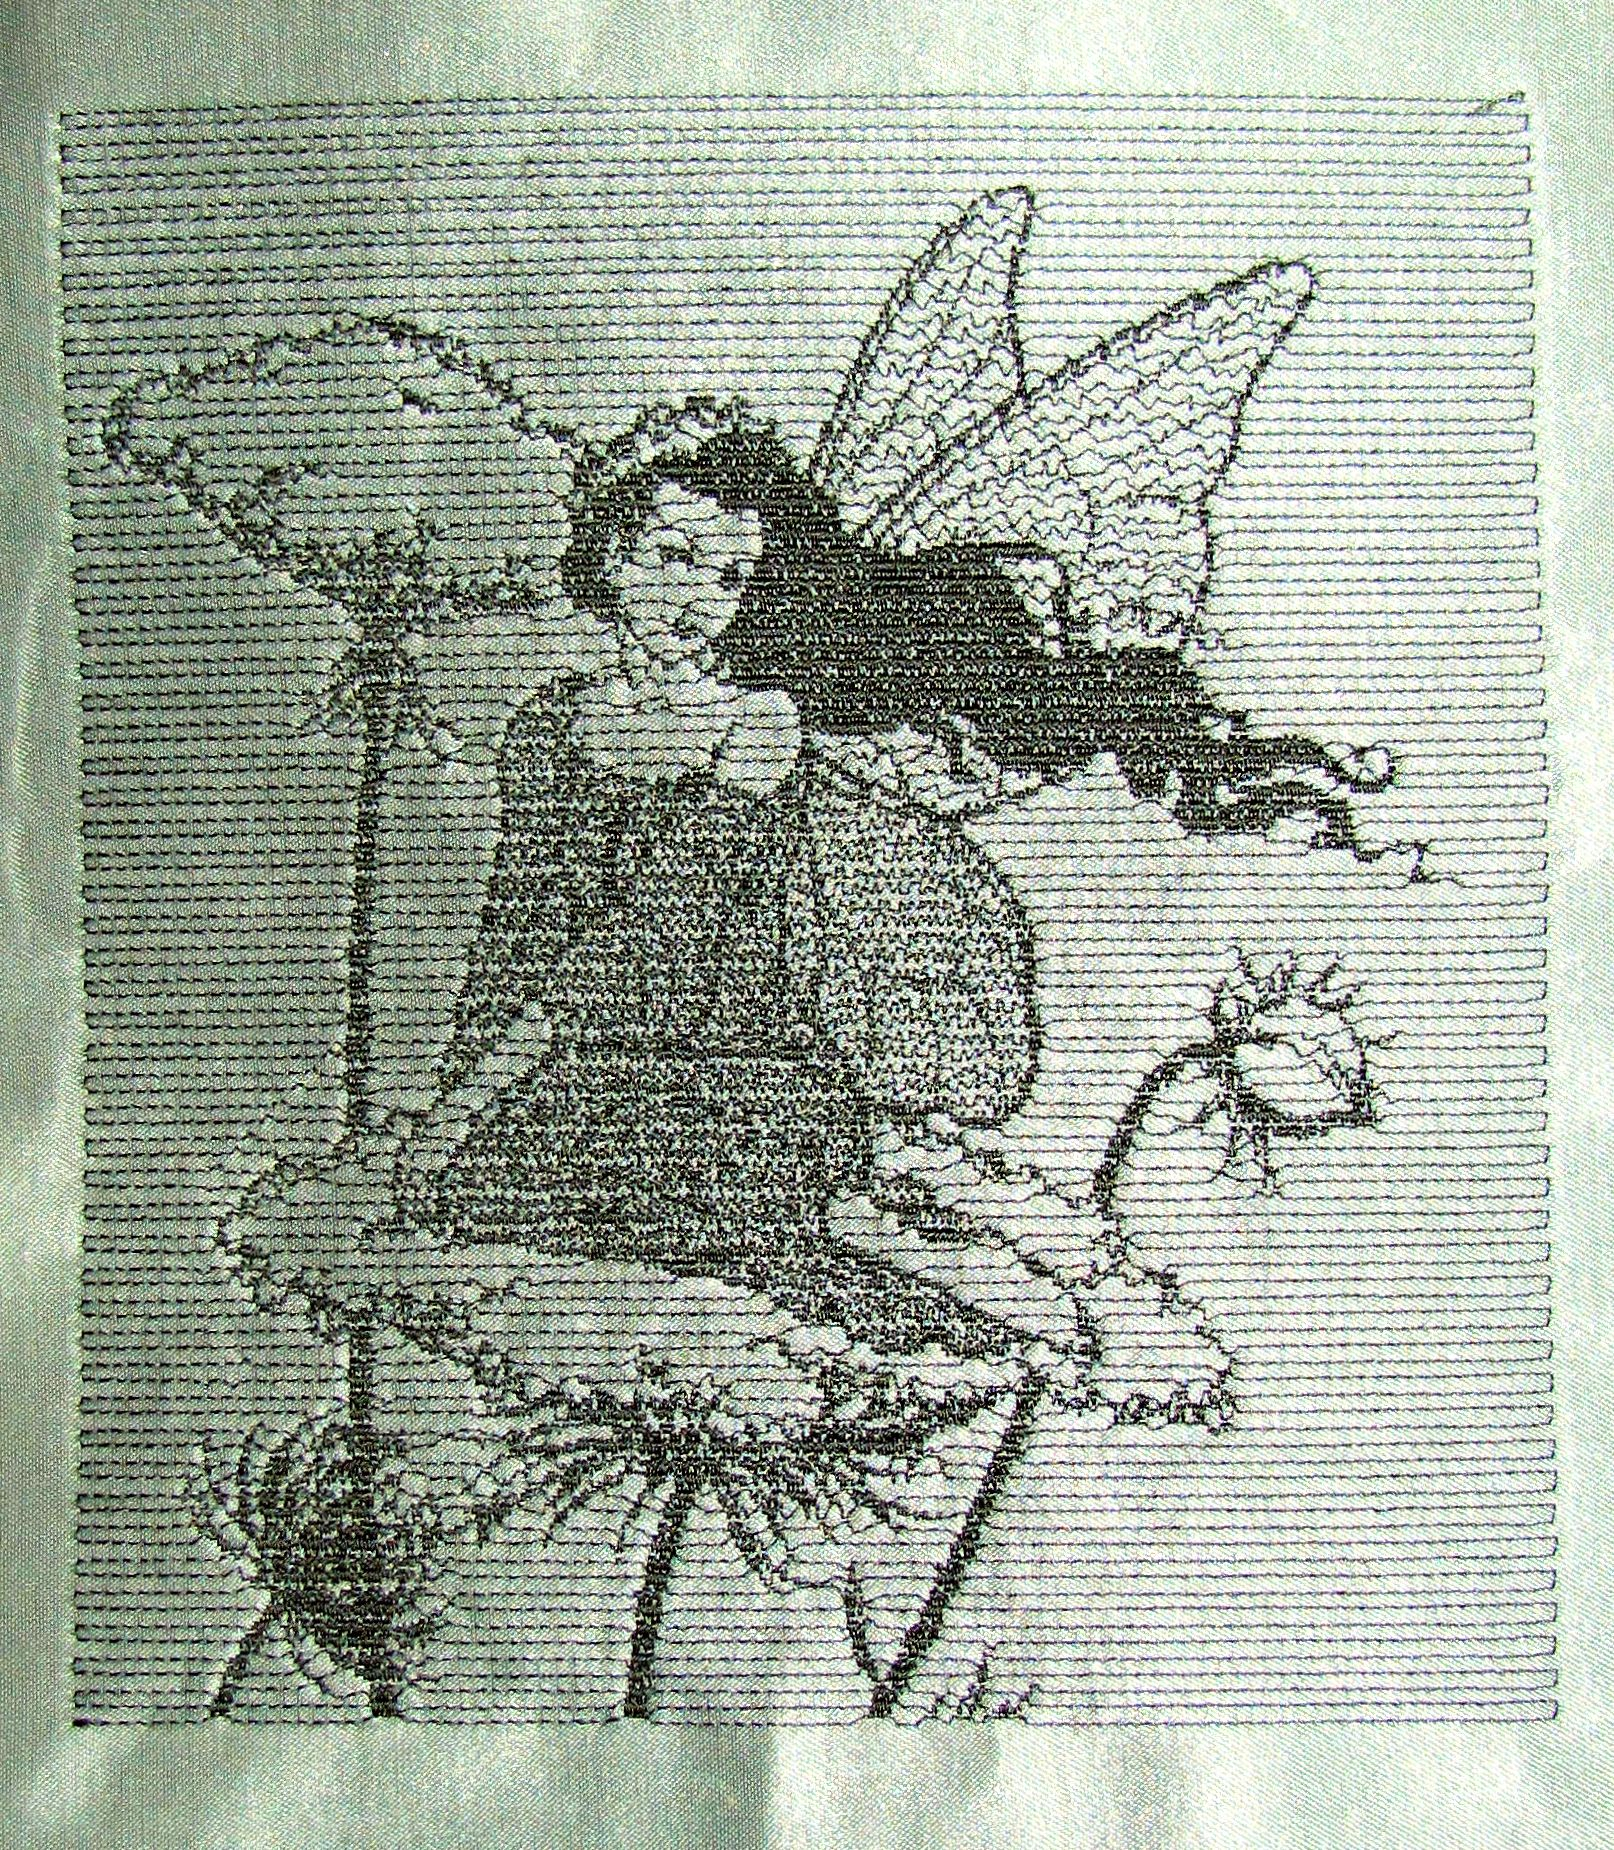 queen-anns-lace-fairy-redwork-fantasy-embroidery